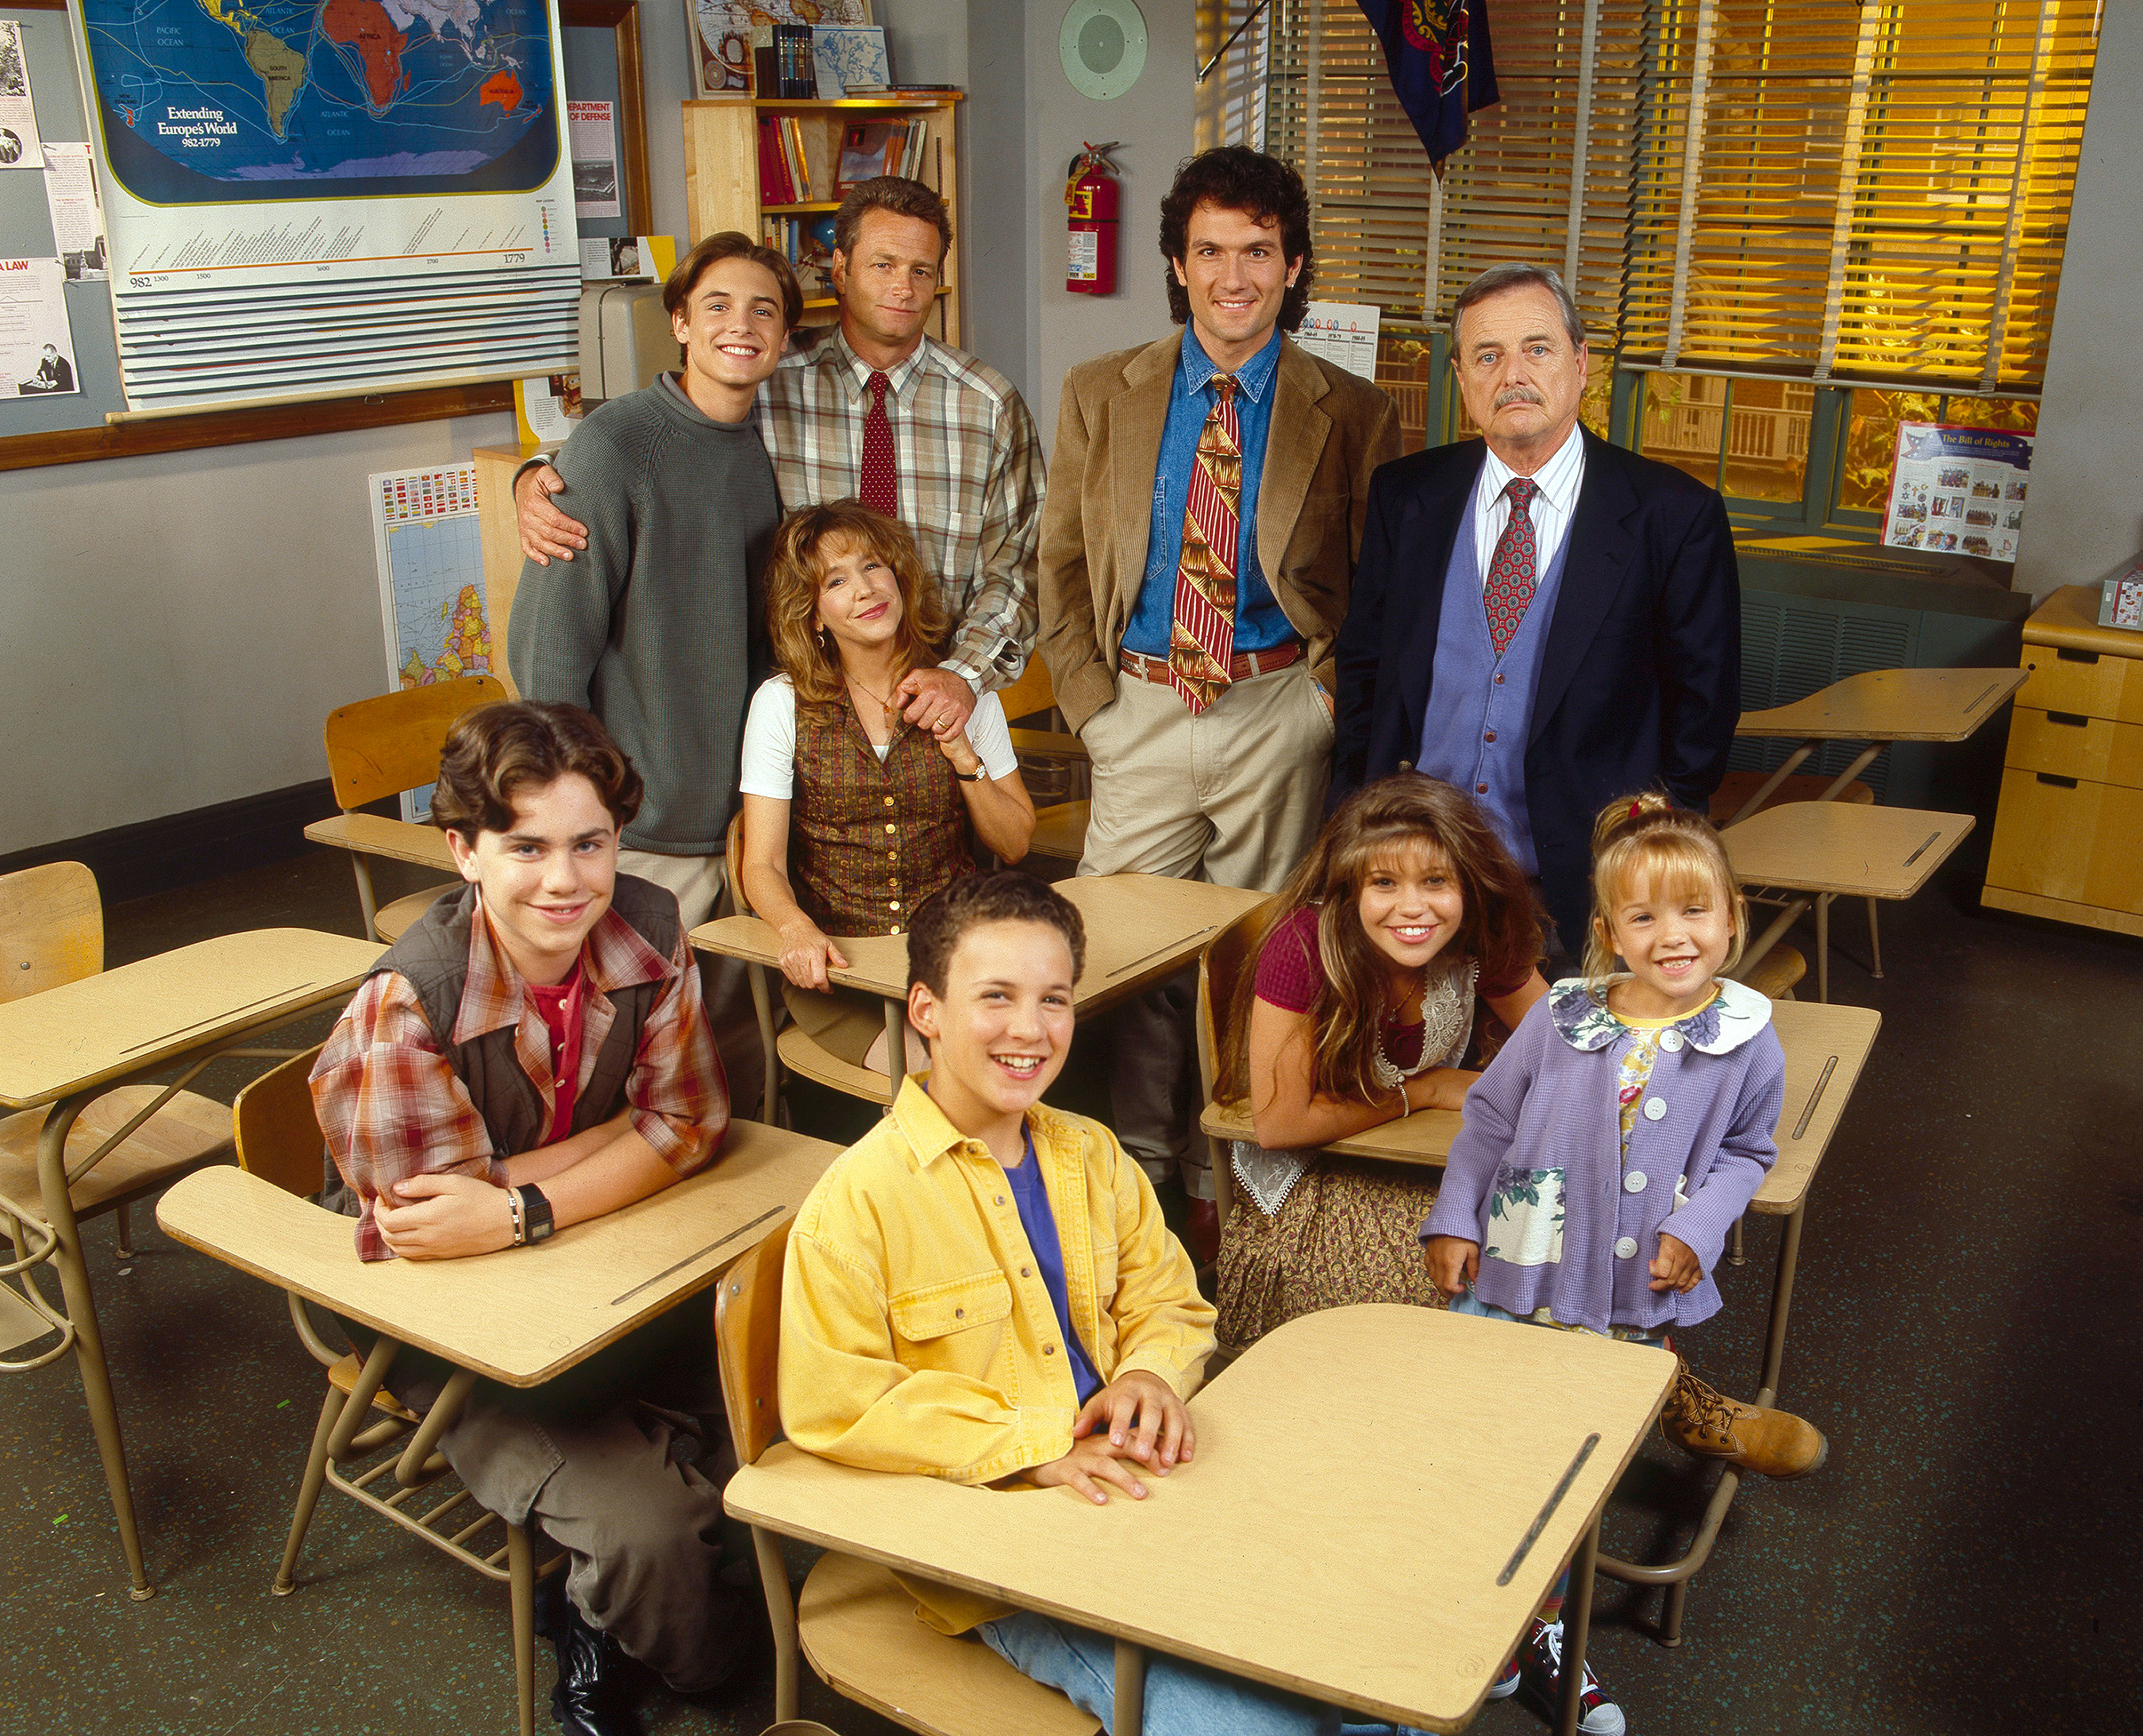 Boy Meets World cast reunites with Mr. Feeny at Boston convention: 'We're baaaaaack!'